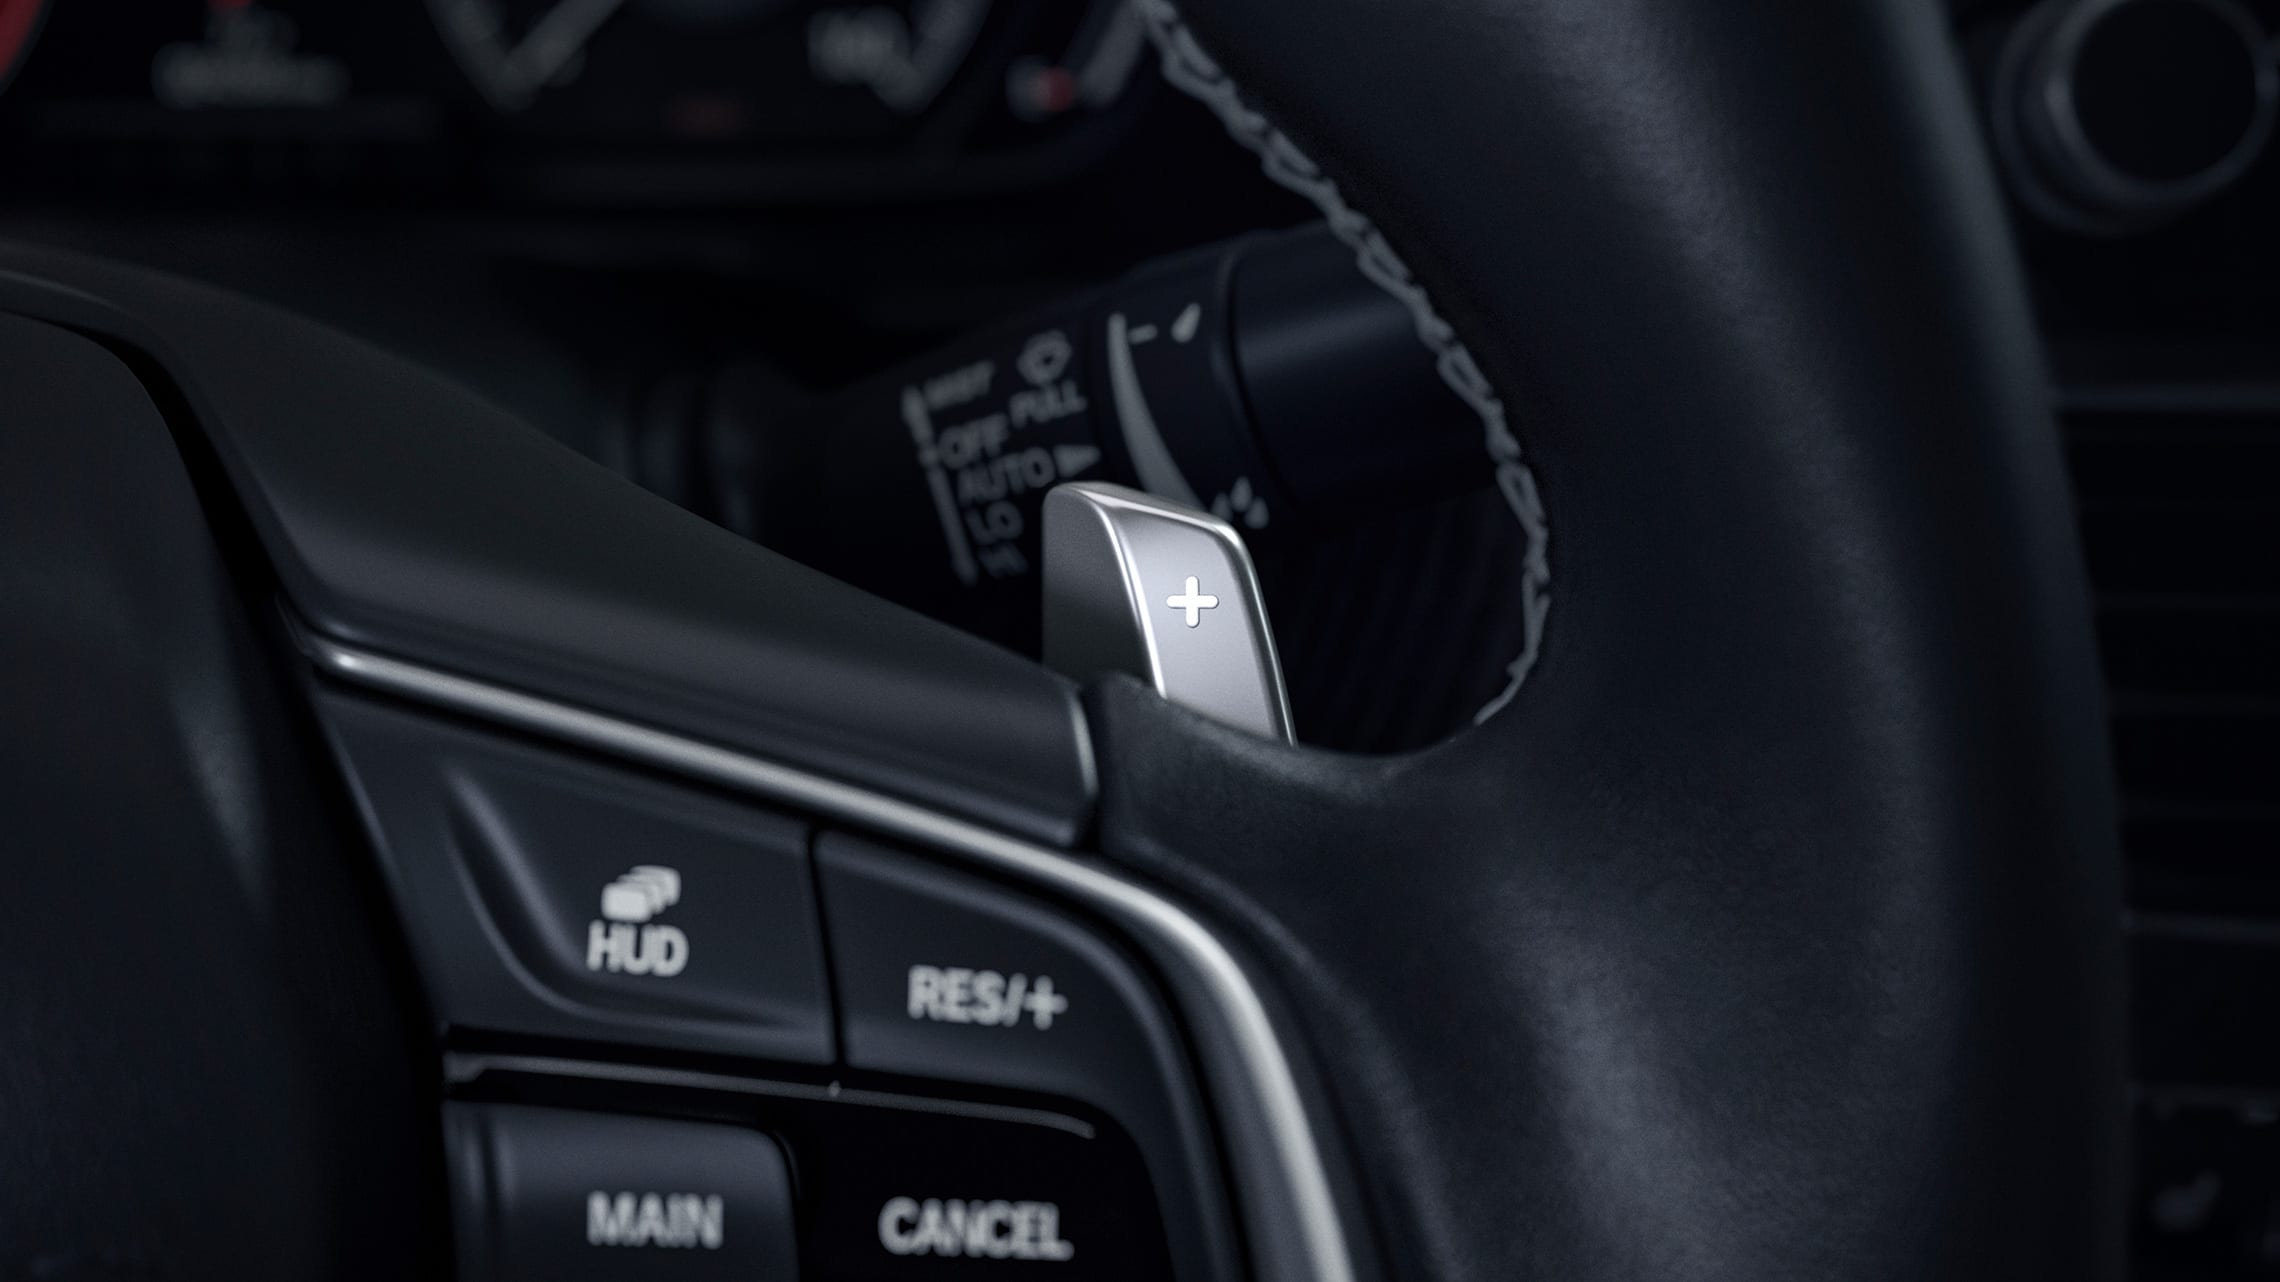 Steering wheel-mounted paddle shifter detail in the 2020 Honda Accord Touring 2.0T.